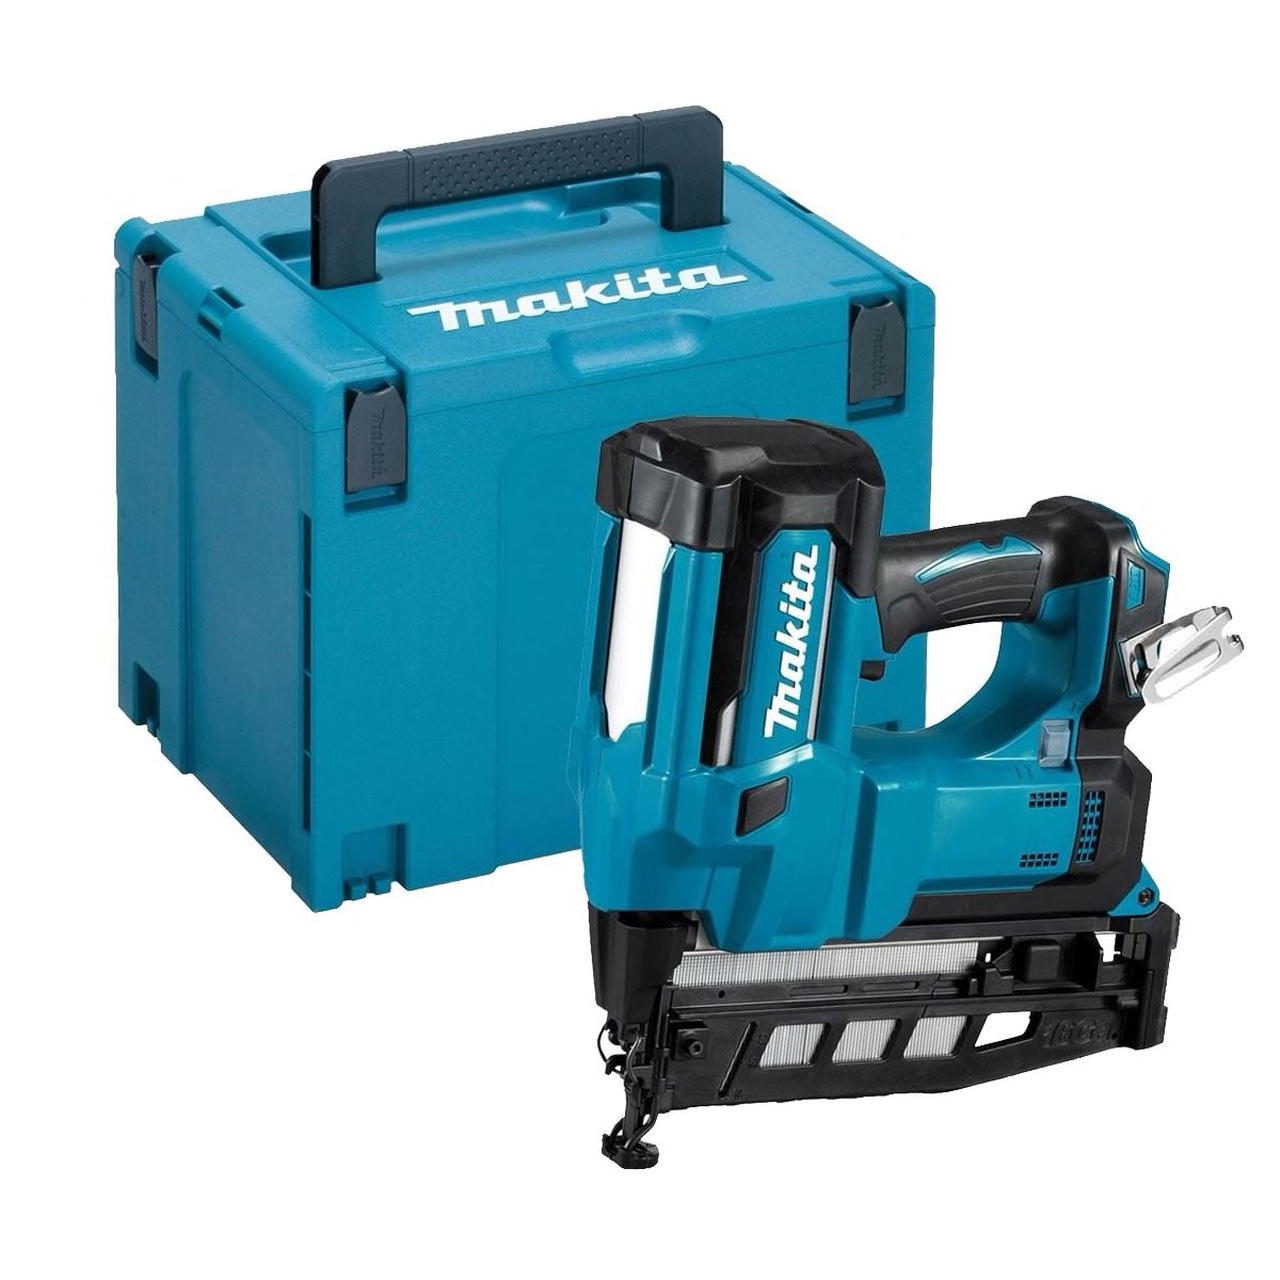 Makita Nail Guns & Staple Guns